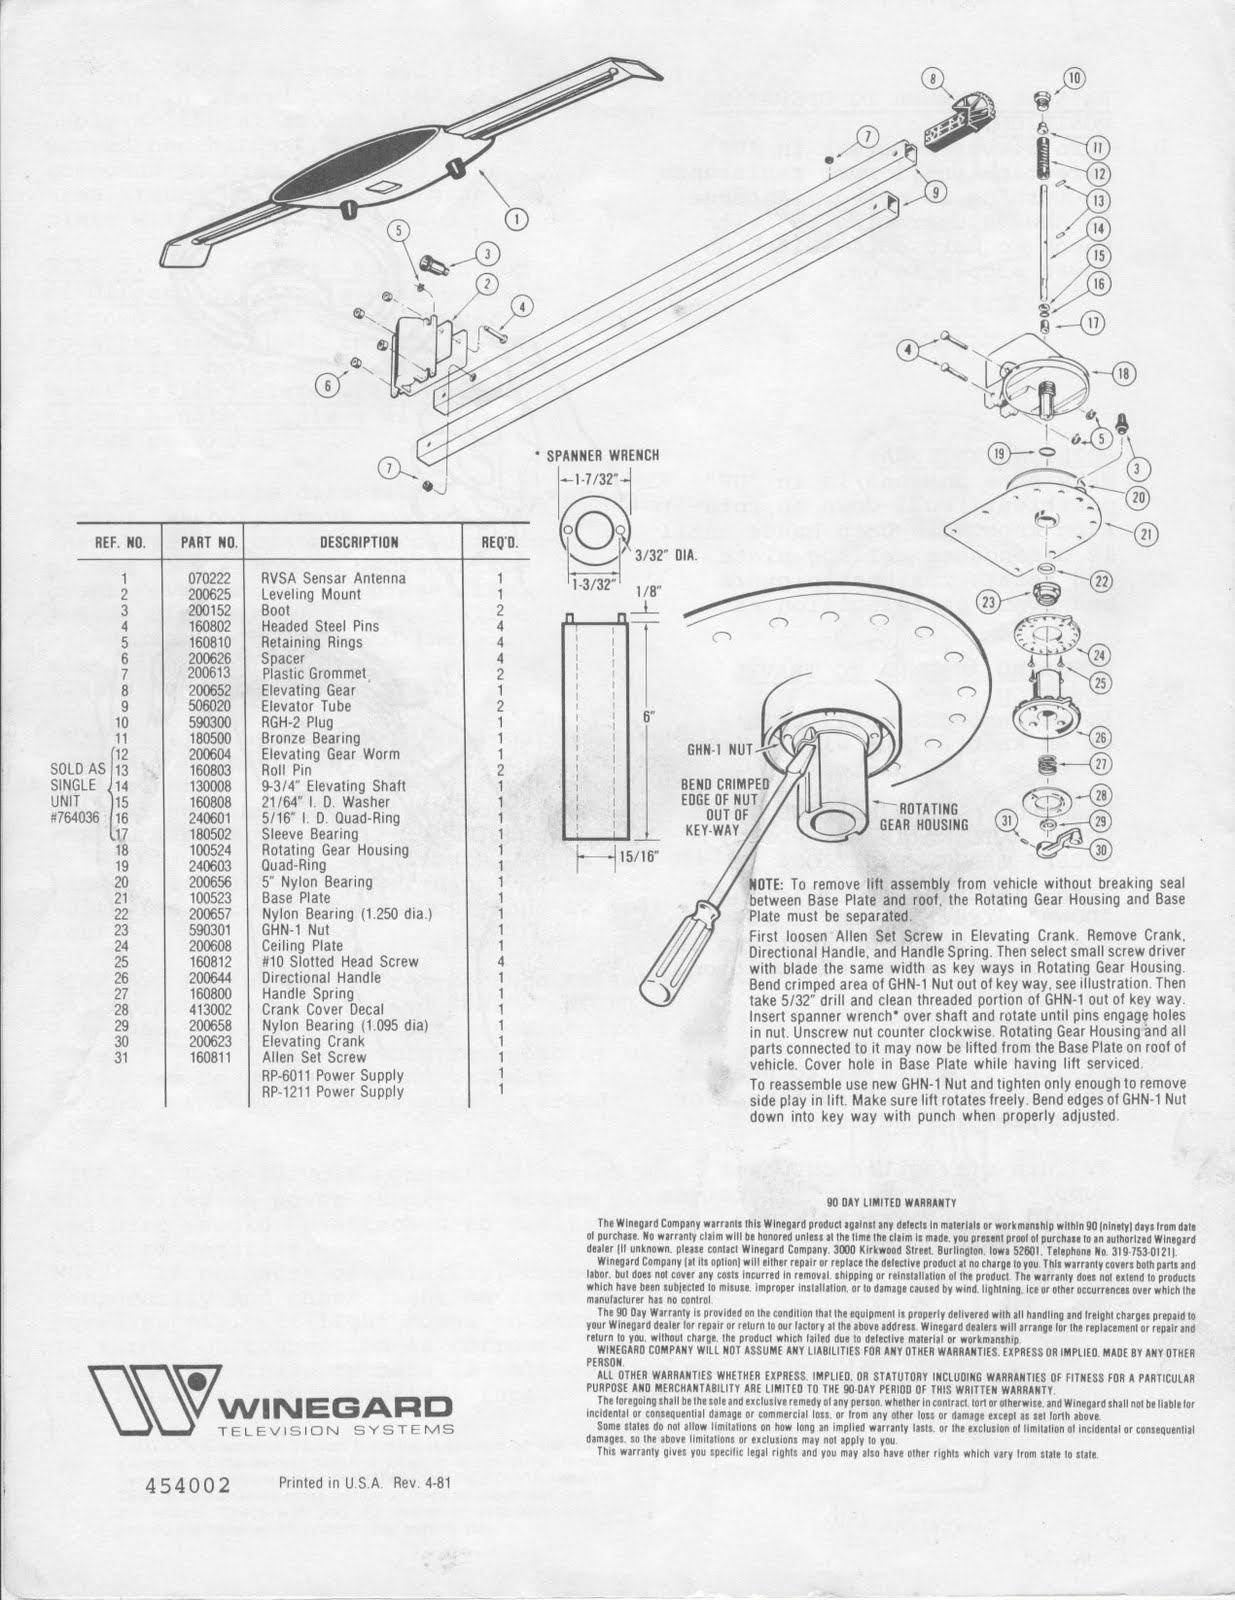 wiring diagrams for fleetwood rv wiring automotive wiring diagrams wiring diagrams for fleetwood rv winegard rv tv antenna0001%5b1%5d 012